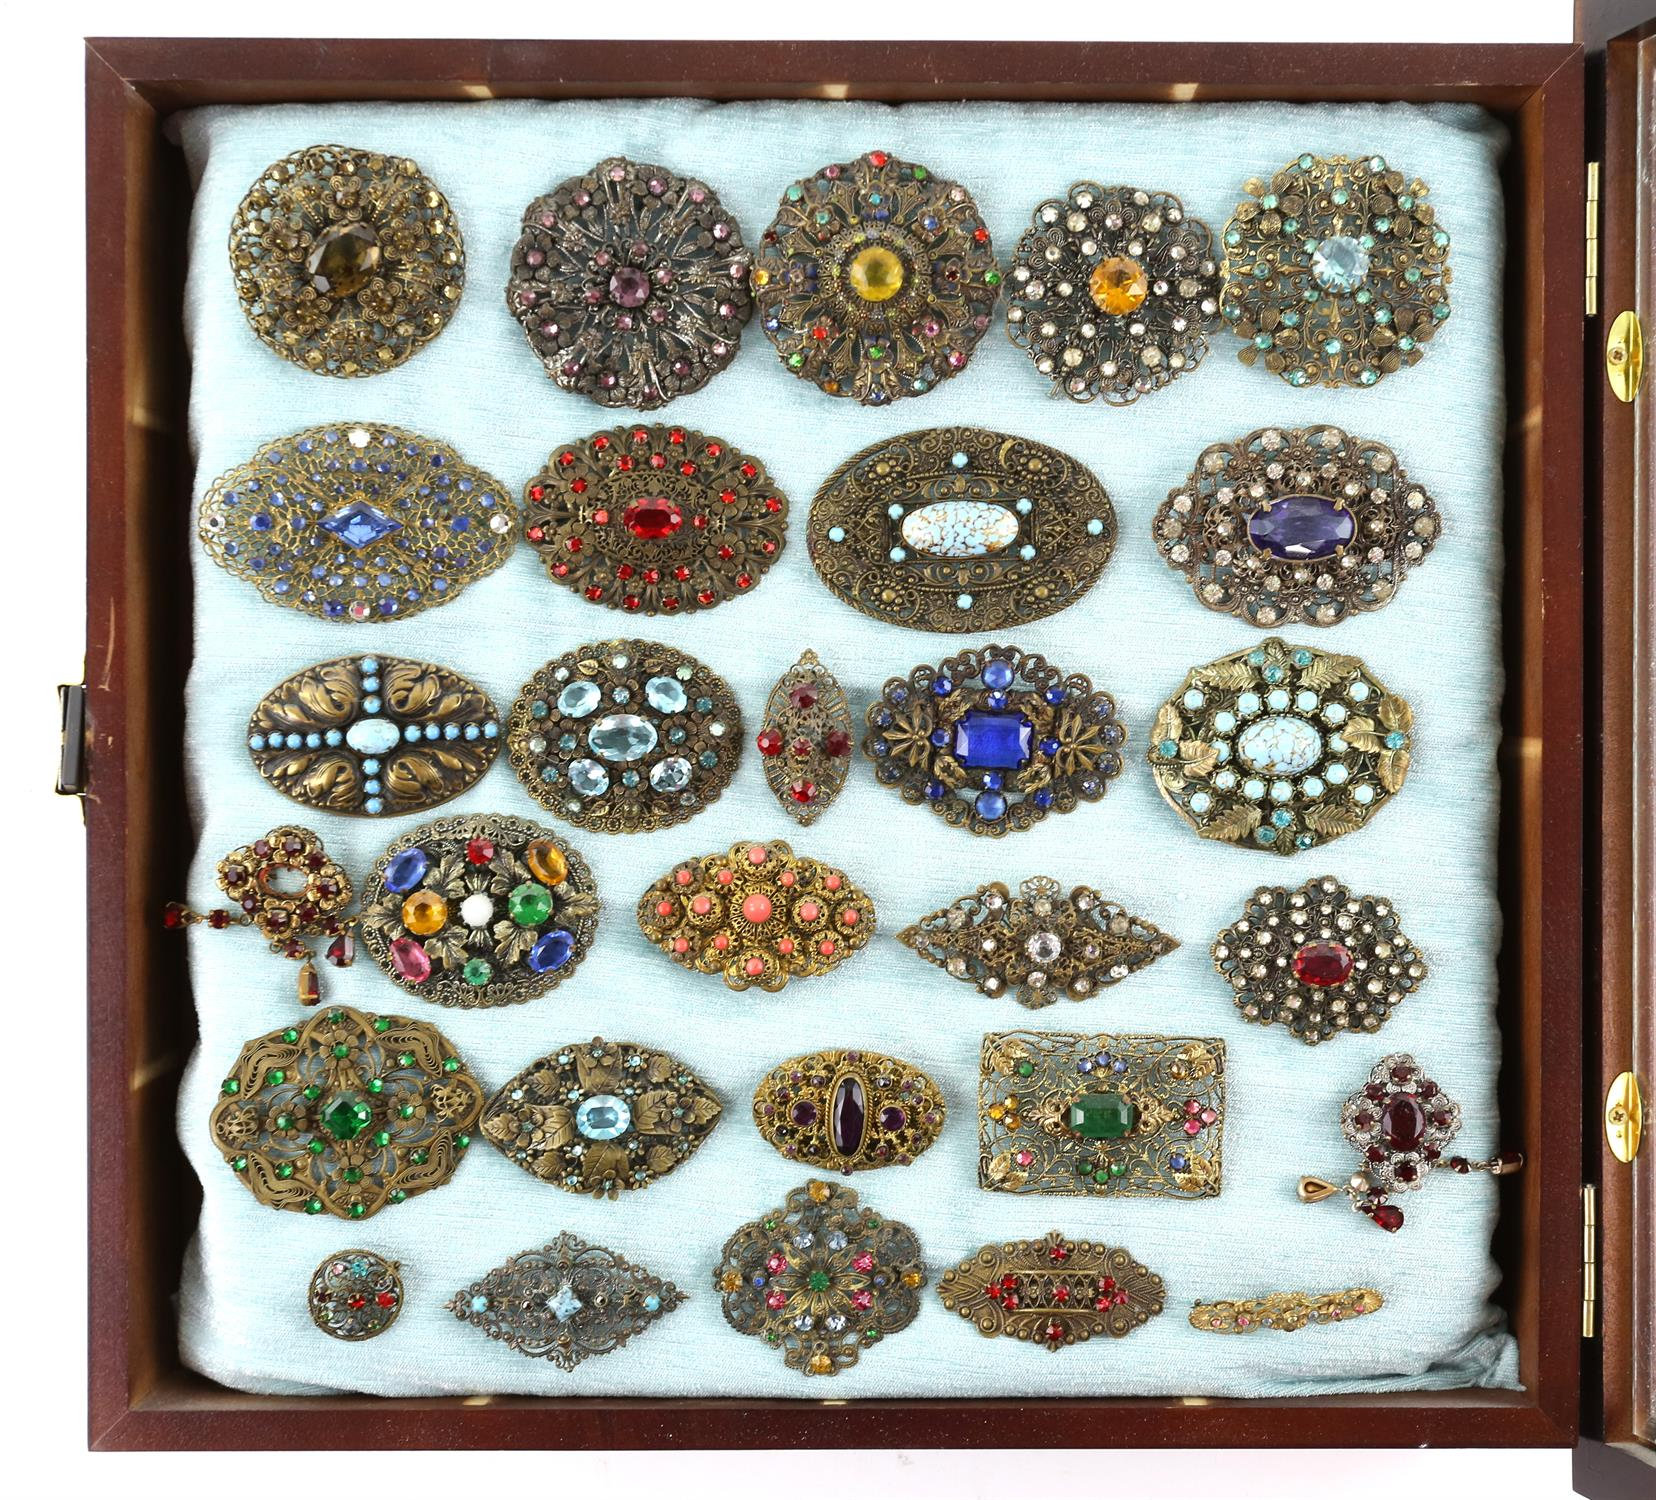 Three frames of brooches, largest frame measuring approximately 82 x 36.5cm, filled with colourful - Image 4 of 4